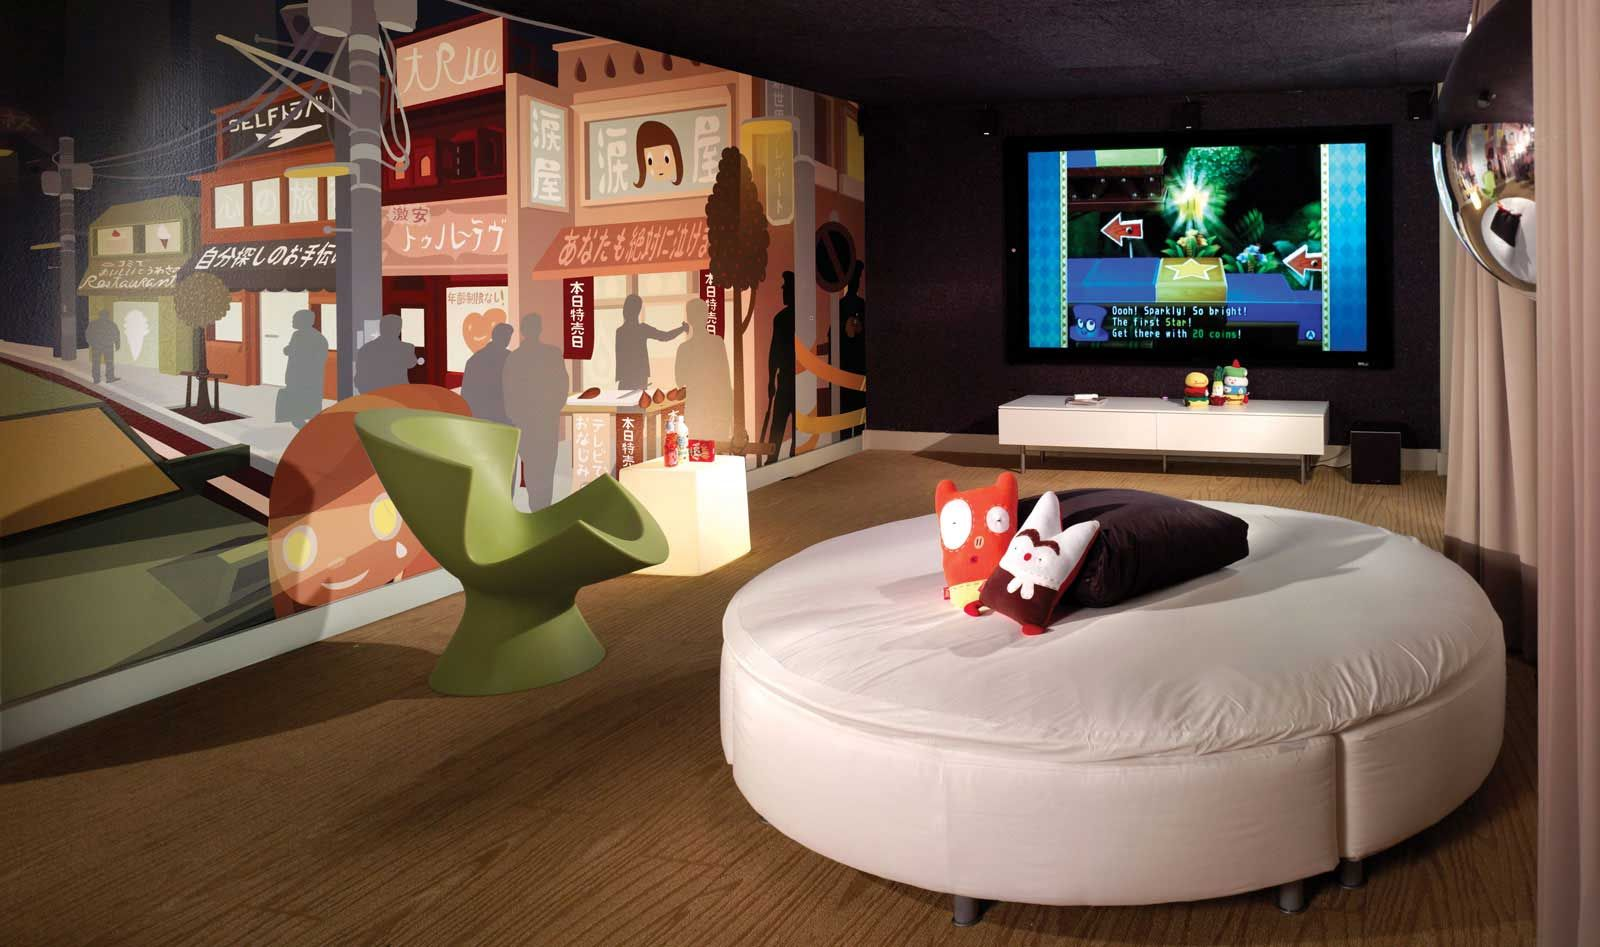 Hotel tomo hip japanese anime themed hotel in san franciscos japan town